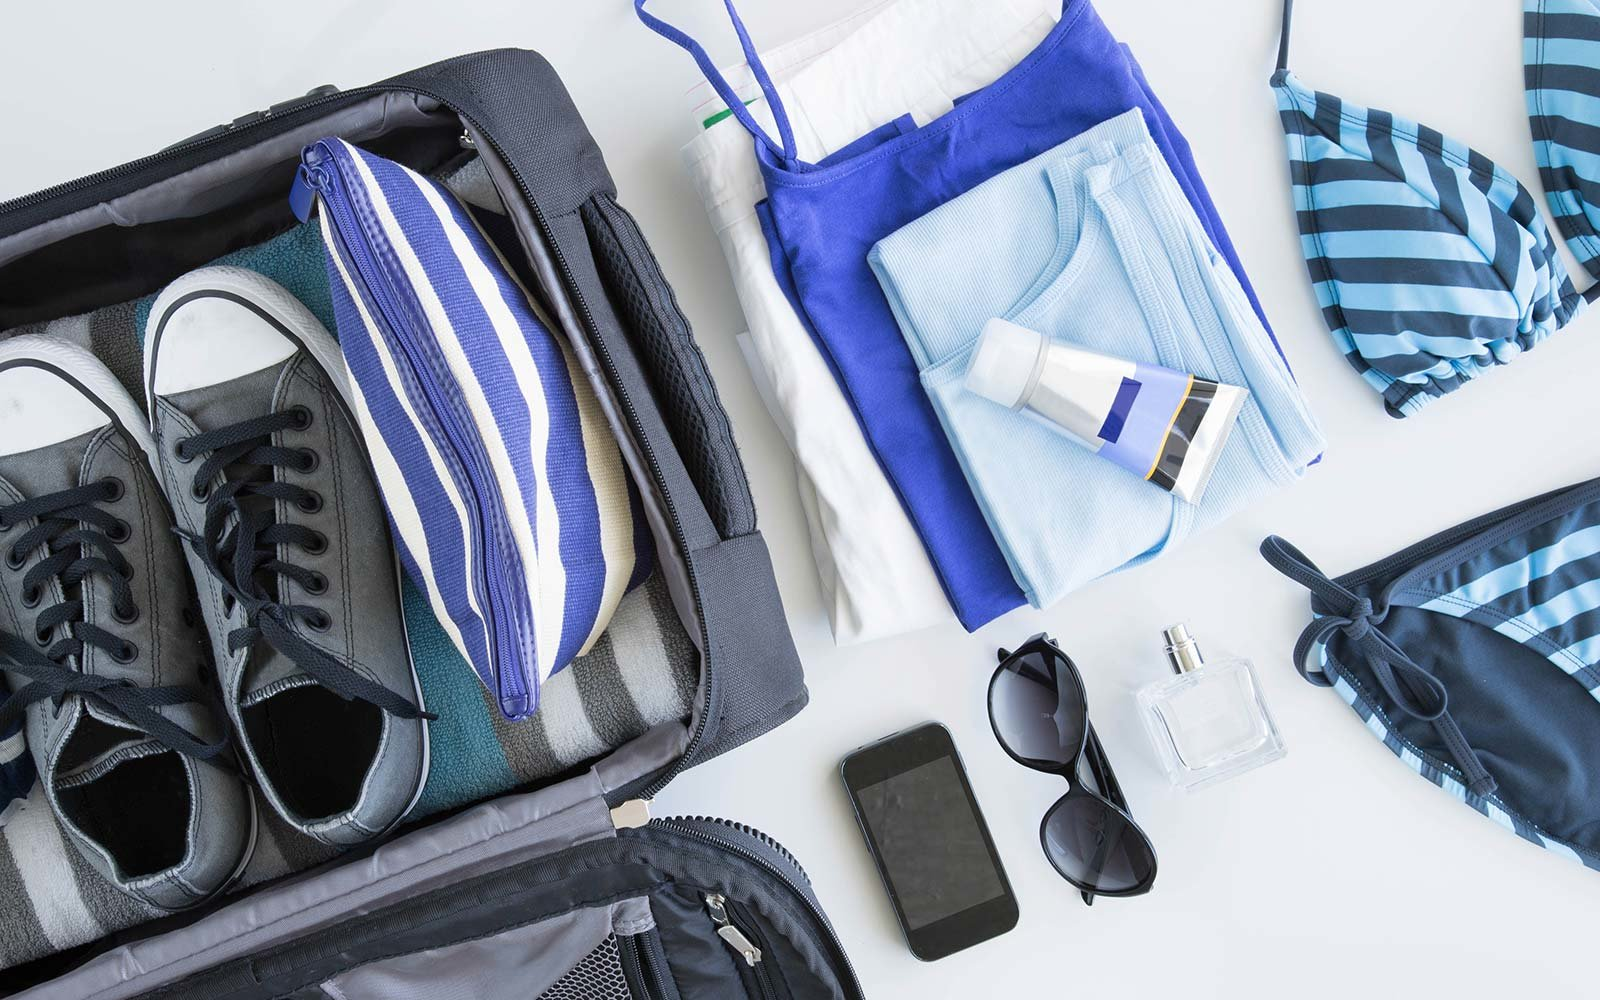 Packing Cubes vs. Rolling: Which is Best?